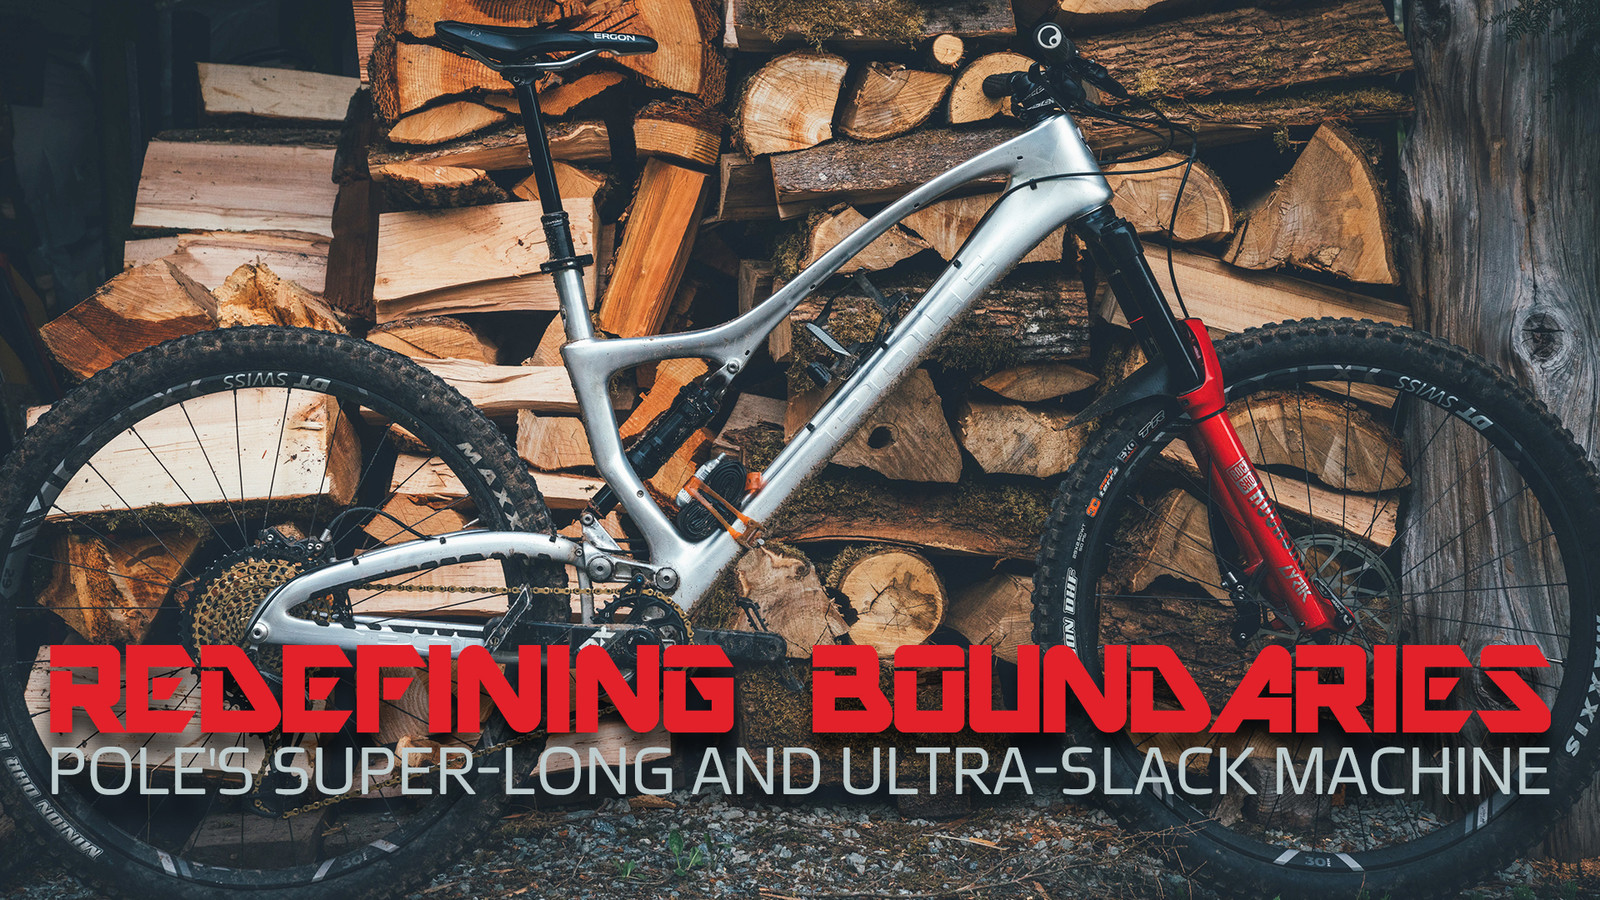 Redefining Boundaries - We Test the Super-Long and Ultra-Slack Pole Machine EN